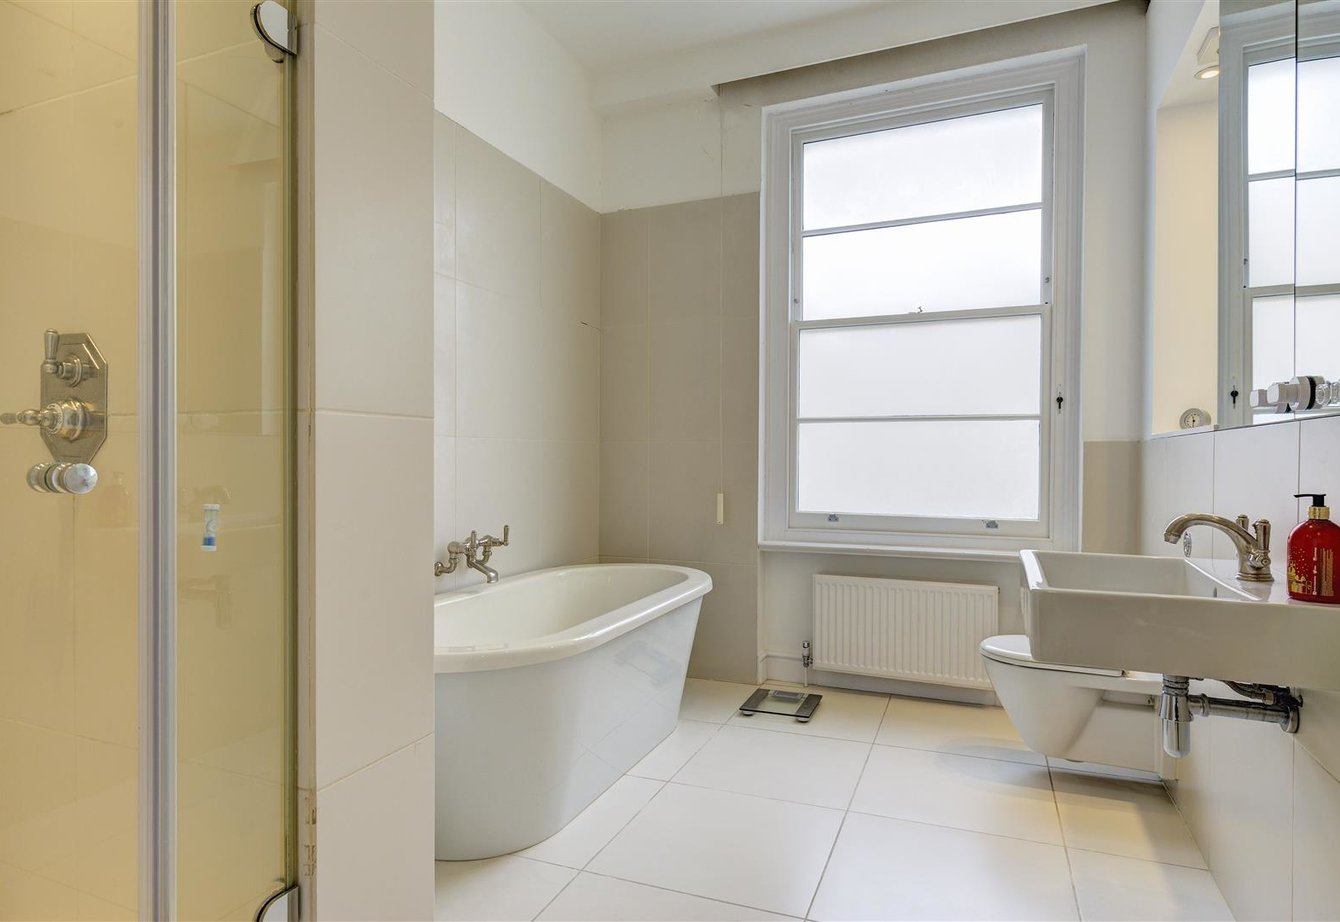 for-sale-bristol-gardens-london-22-view6